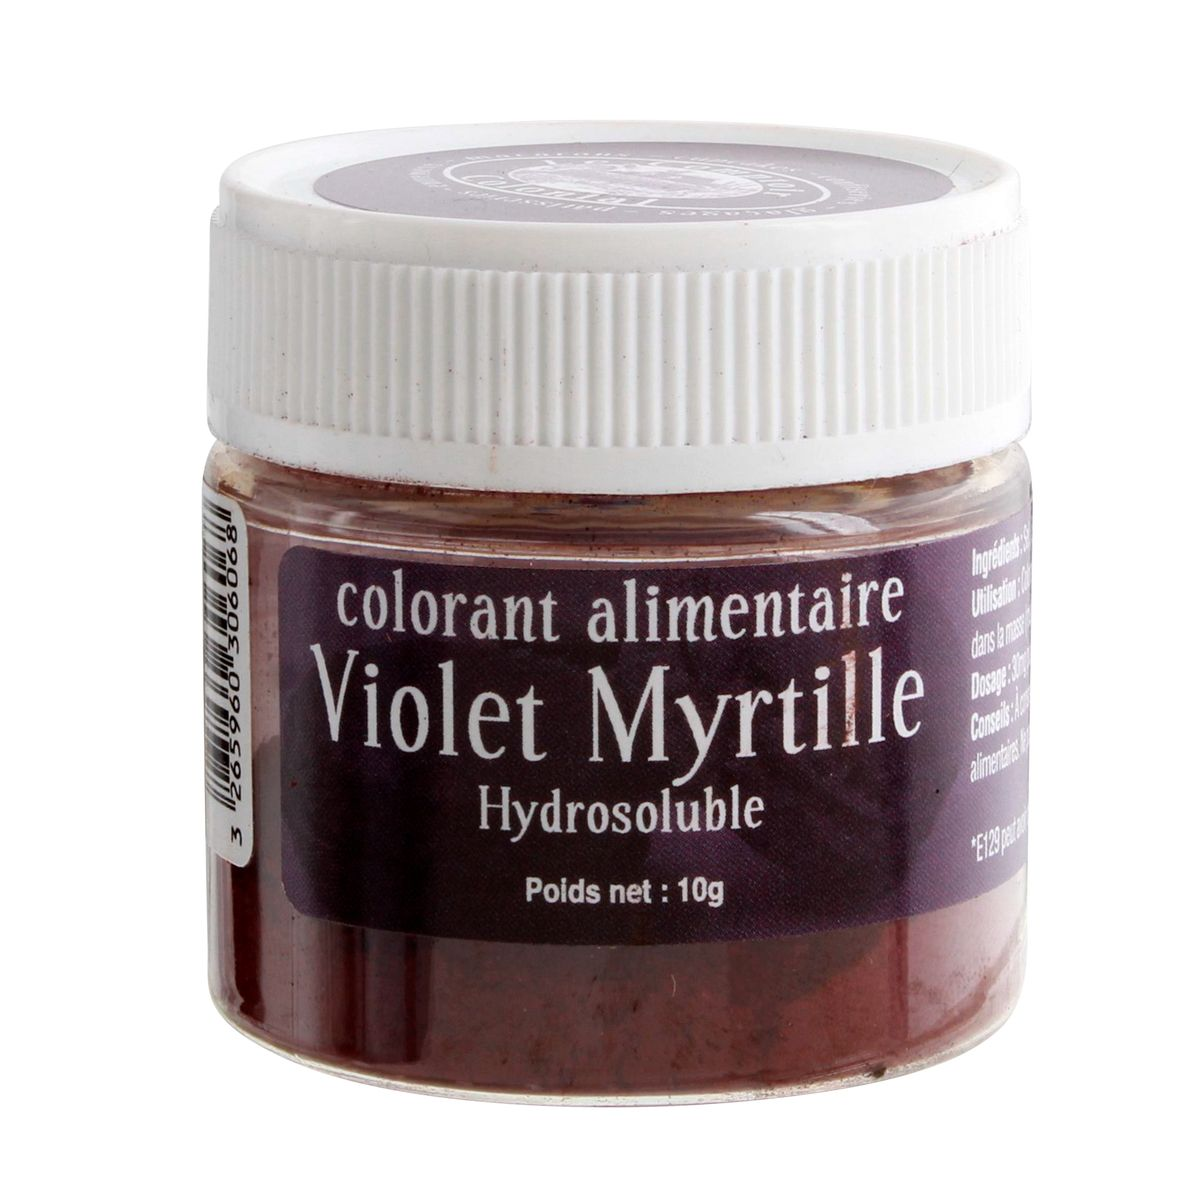 Colorant alimentaire hydrosoluble 10gr violet myrtille - Le Comptoir Colonial